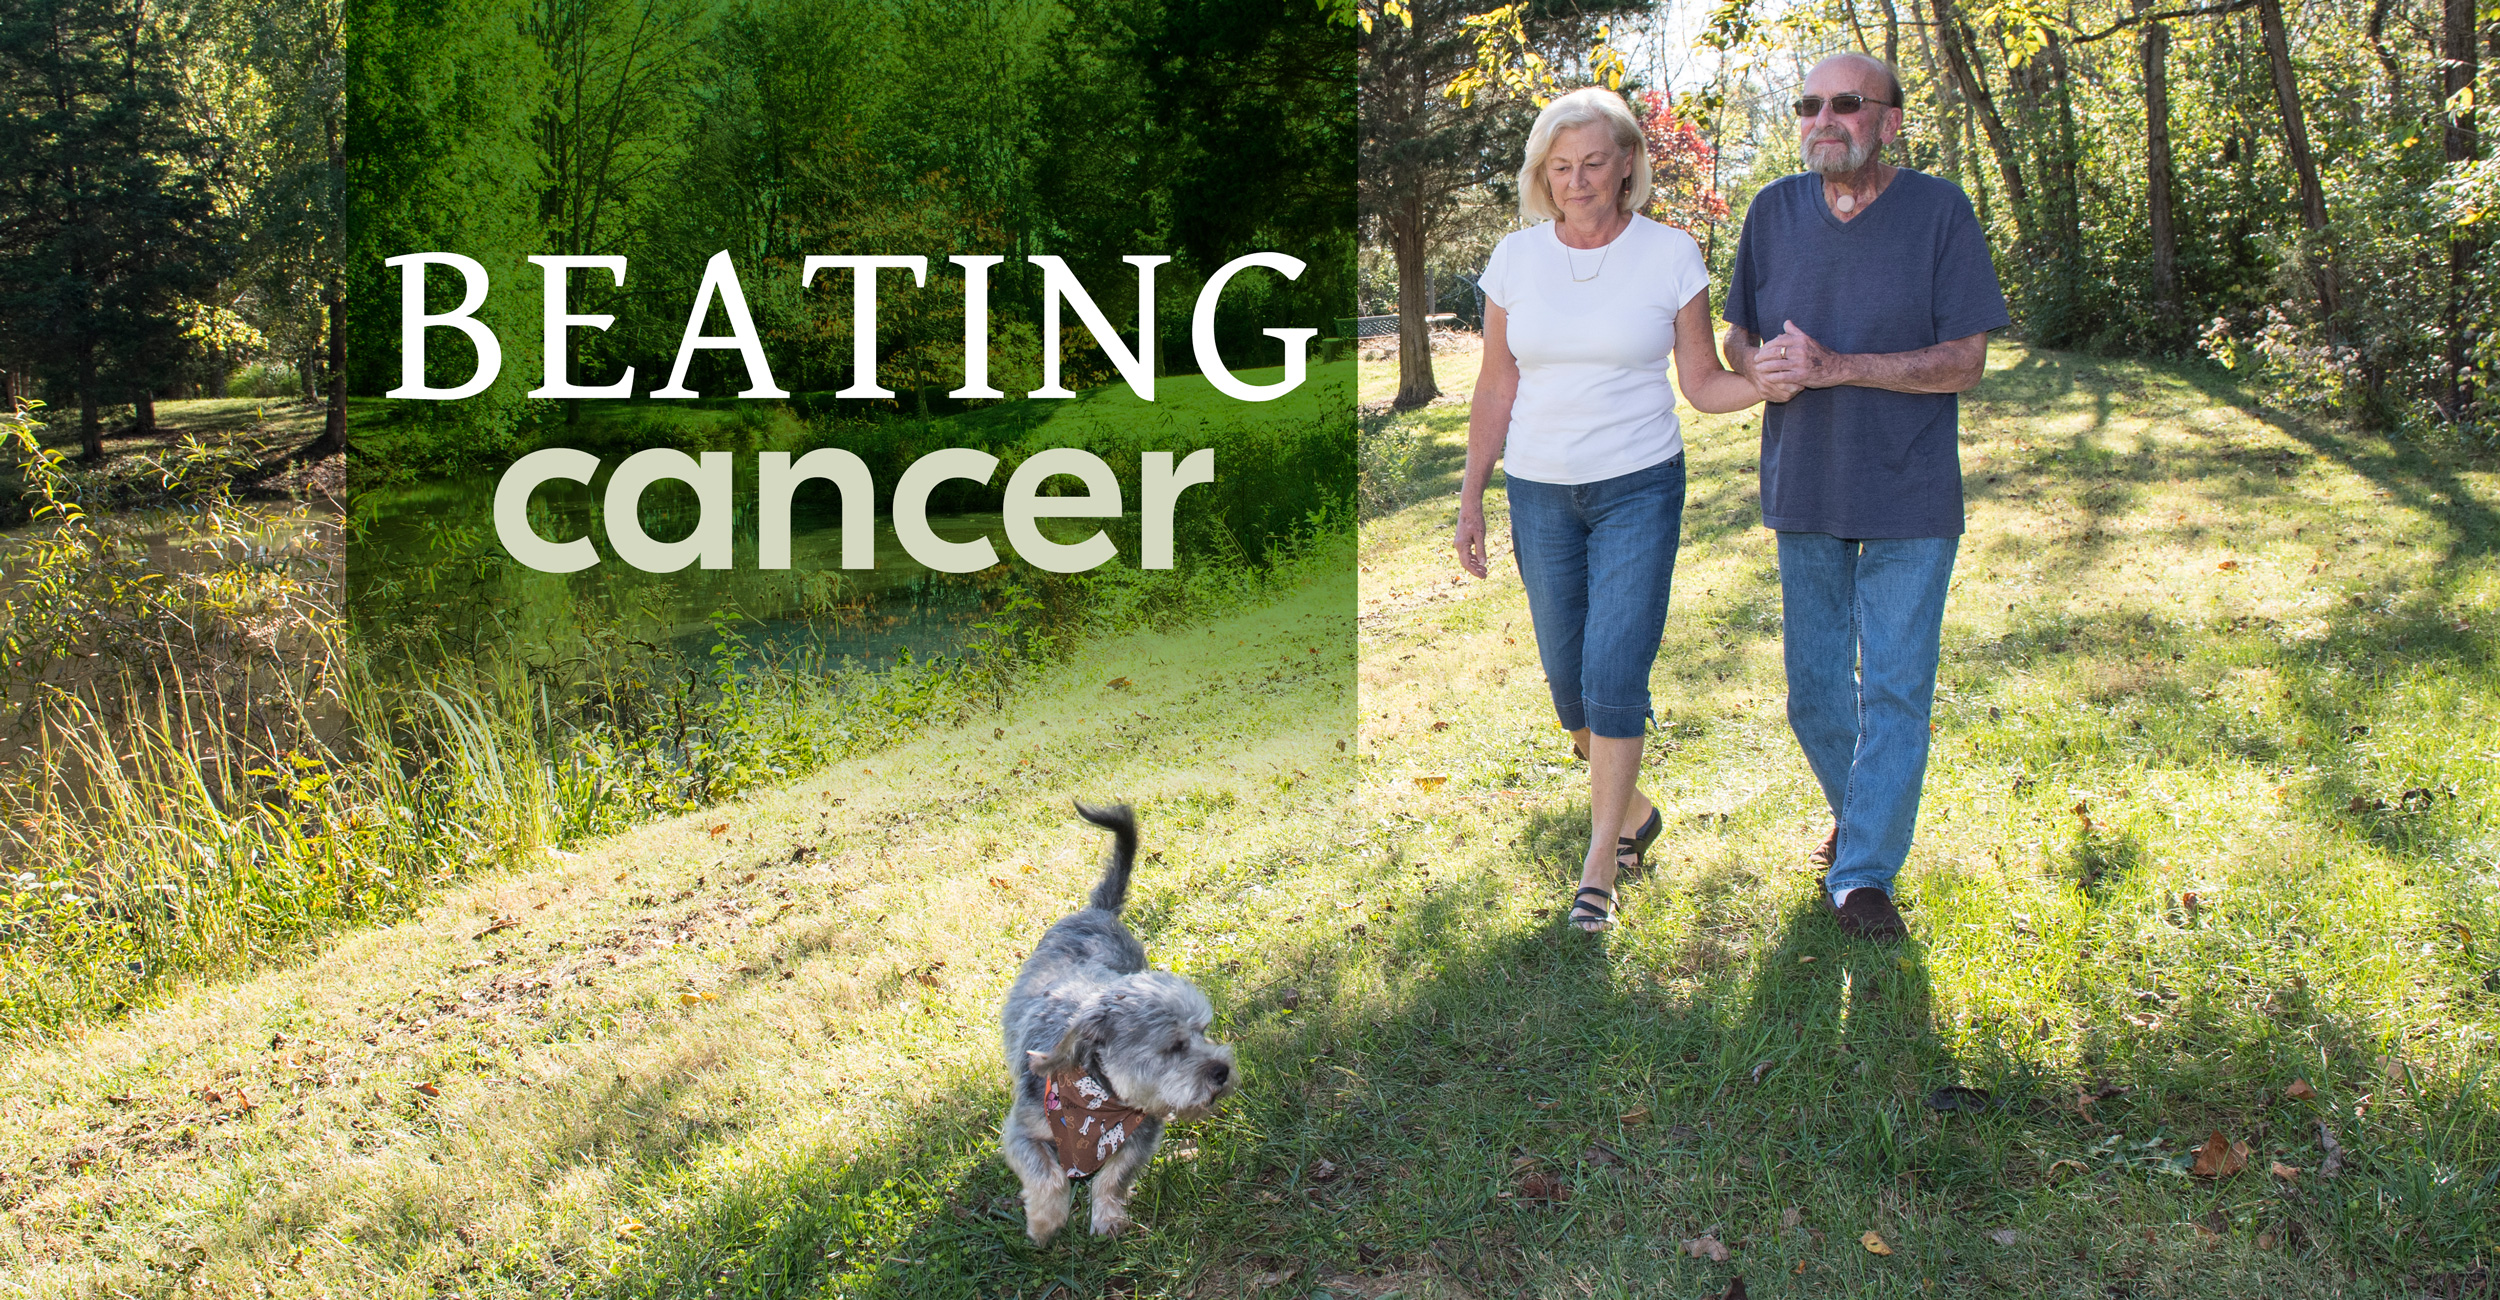 Beating cancer graphic with Poncho Noggler and his wife walking with their dog near a pond